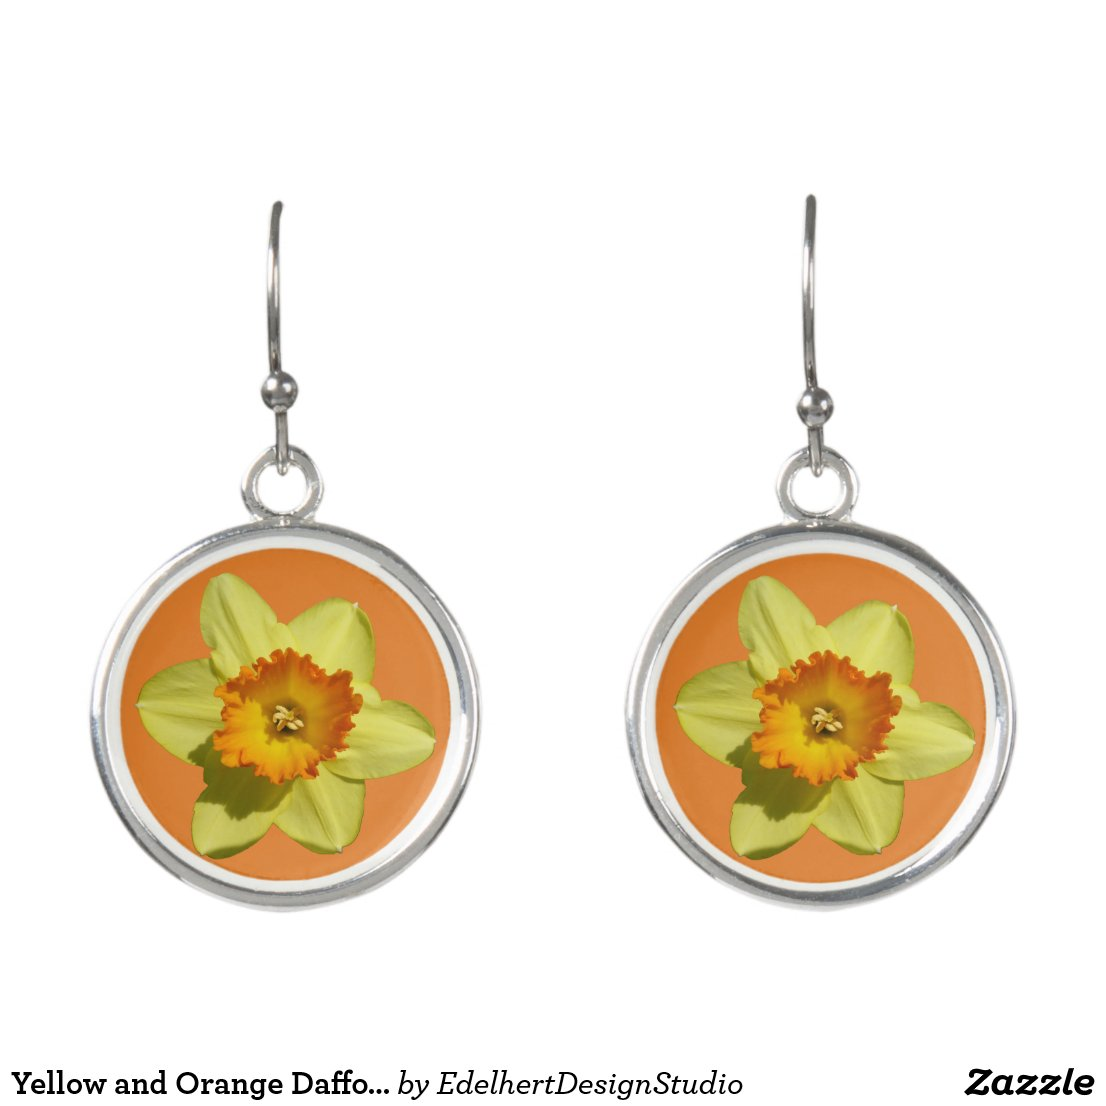 Yellow and Orange Daffodils Earrings